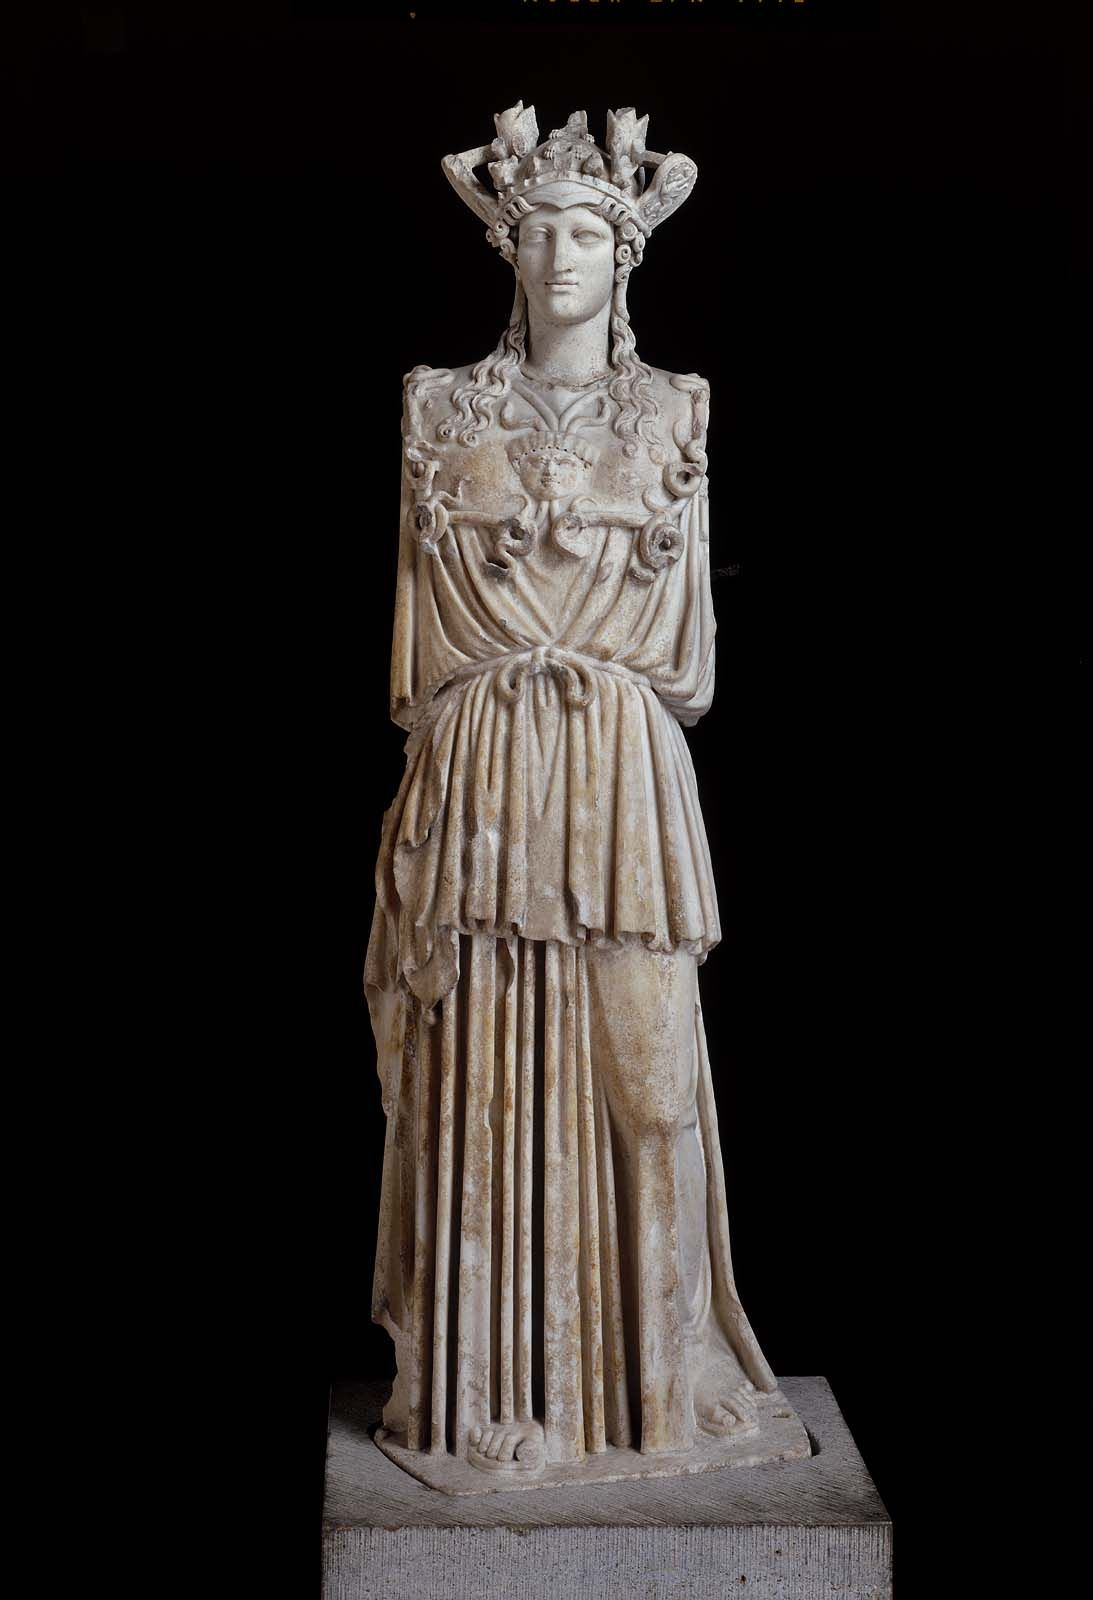 Roman and greek history on virginity